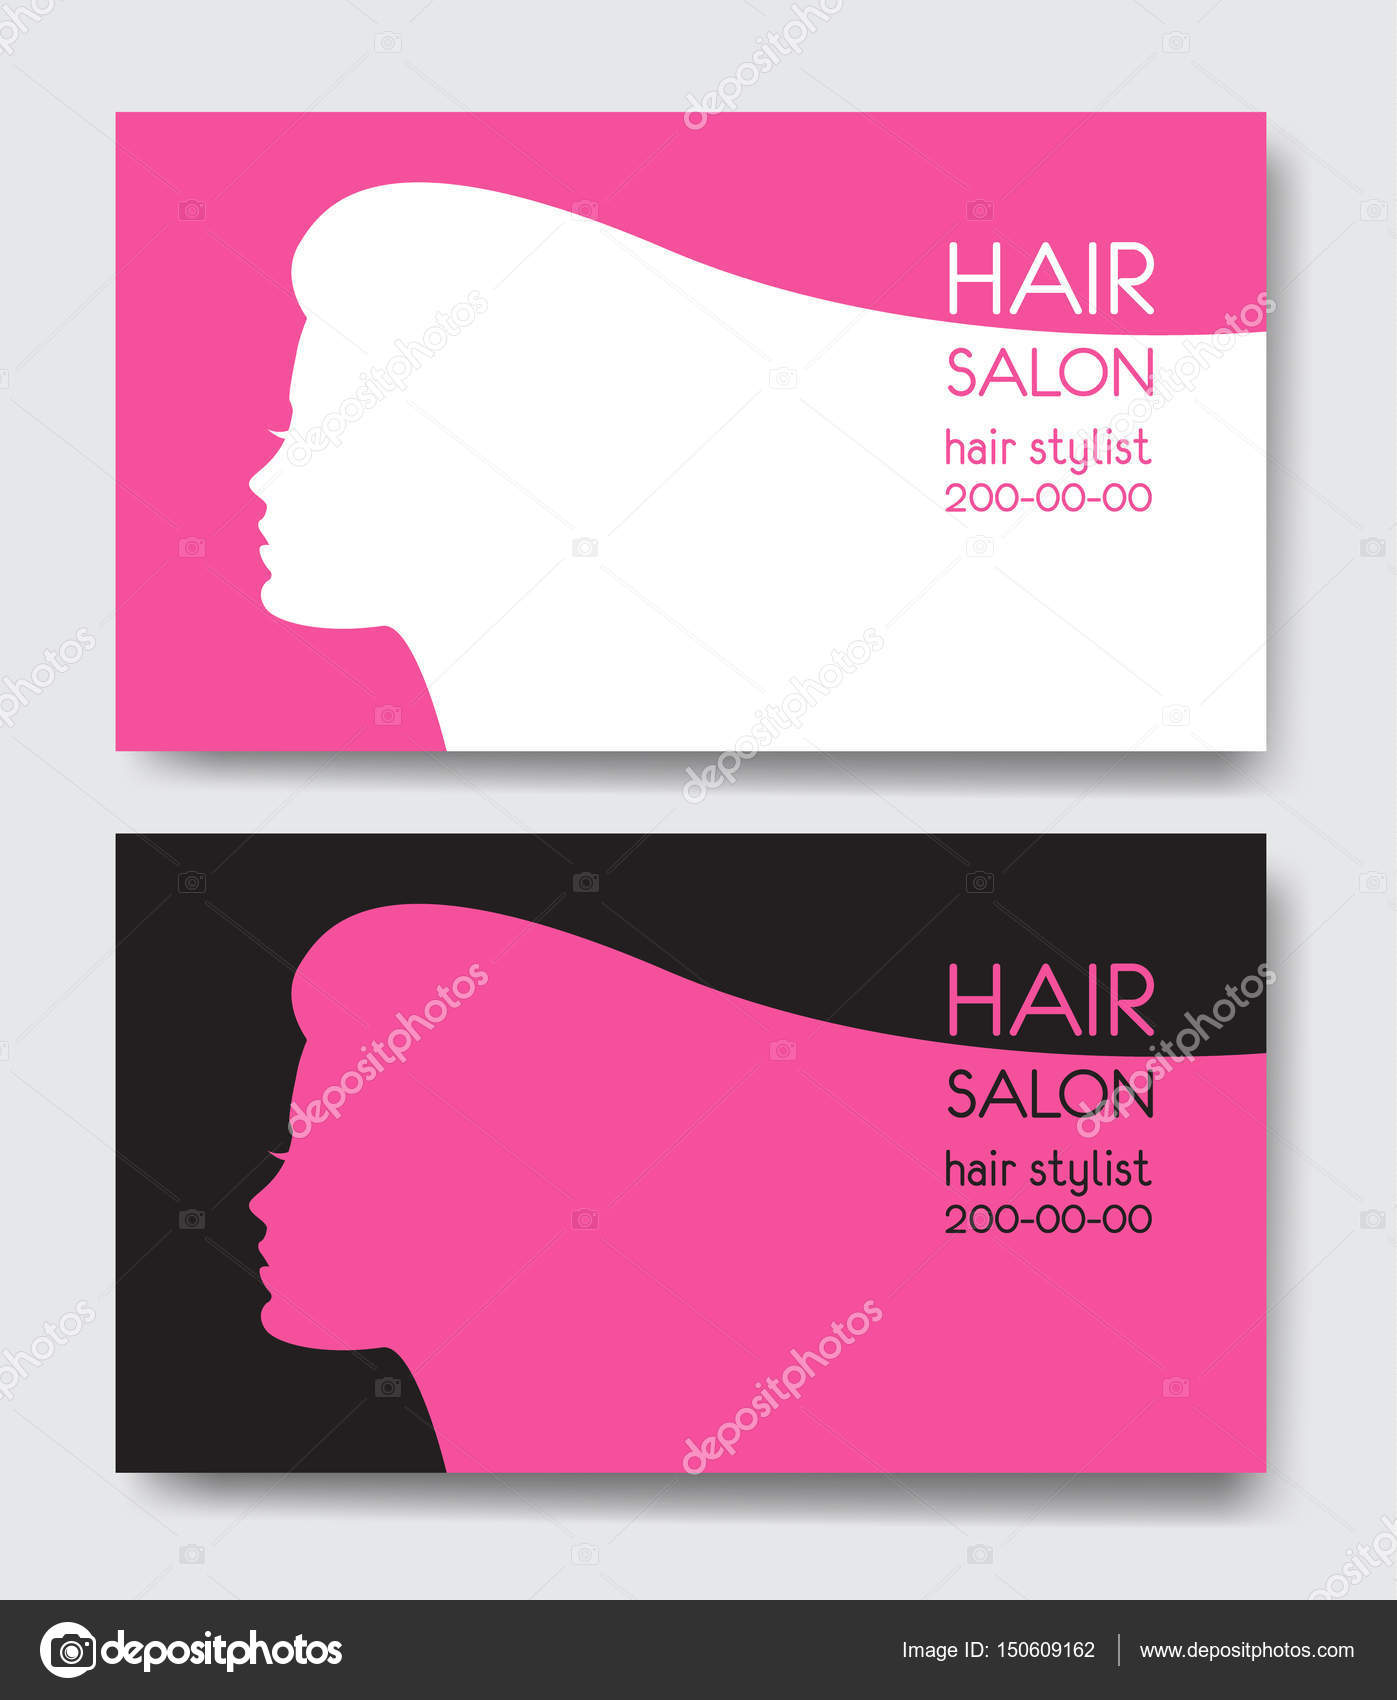 Hair salon business card templates with beautiful woman face sil ...